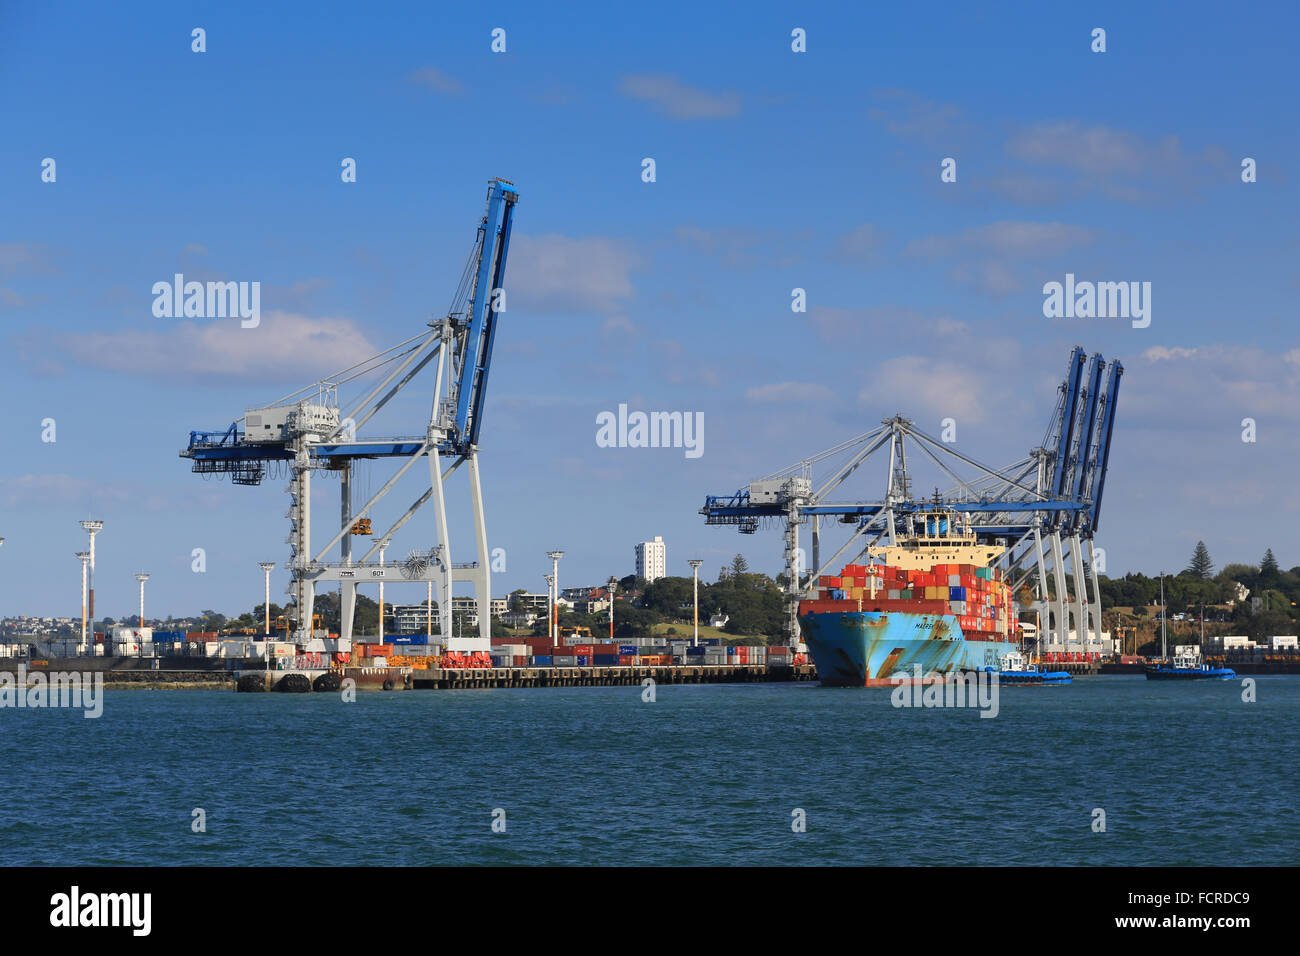 The Maersk Bratan container ship being berthed with tug assistance at the container terminal at Auckland, New Zealand. - Stock Image